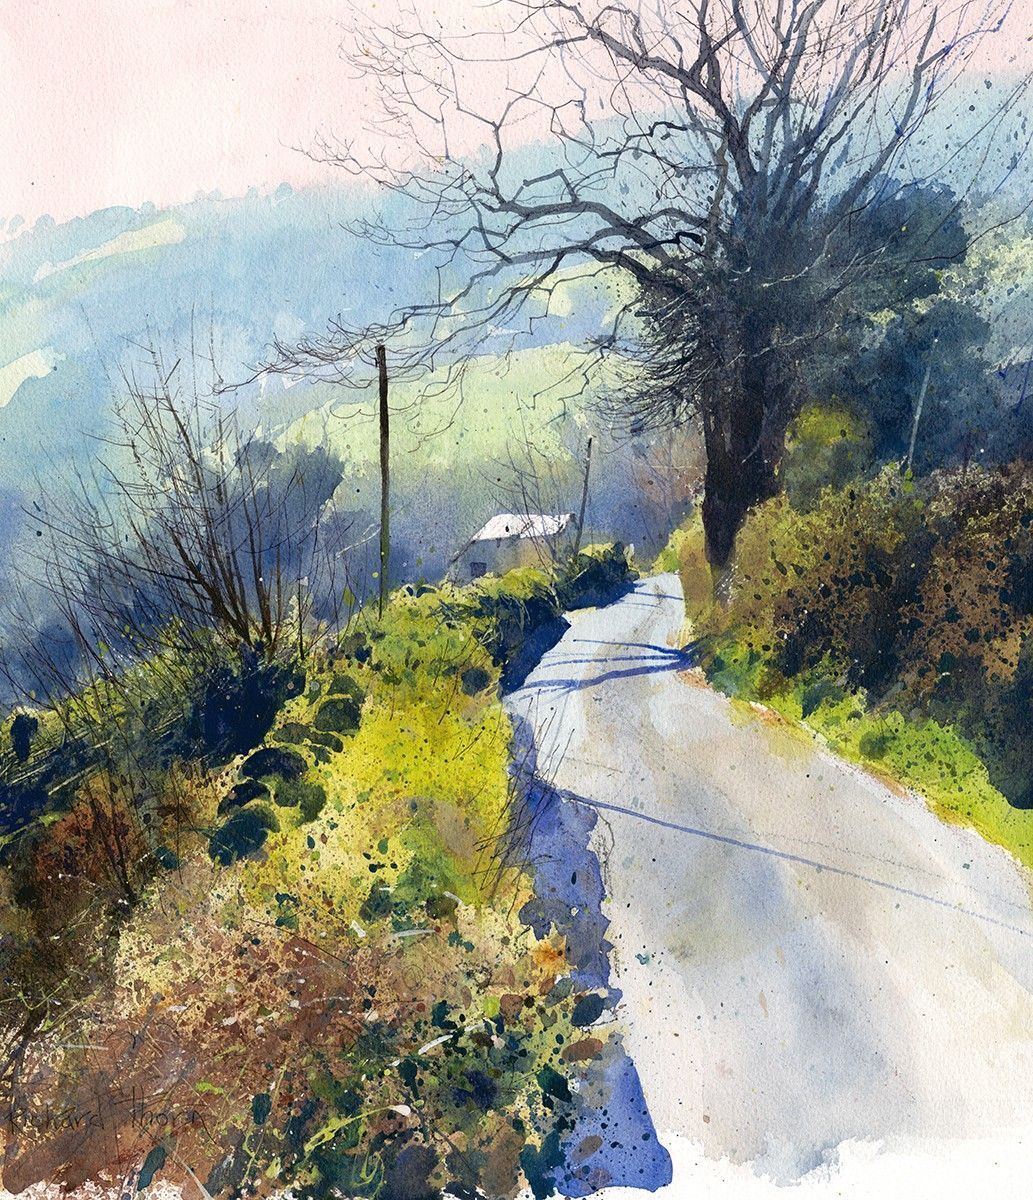 Down In Misty Vale Richard Thorn Watercolorarts Watercolor